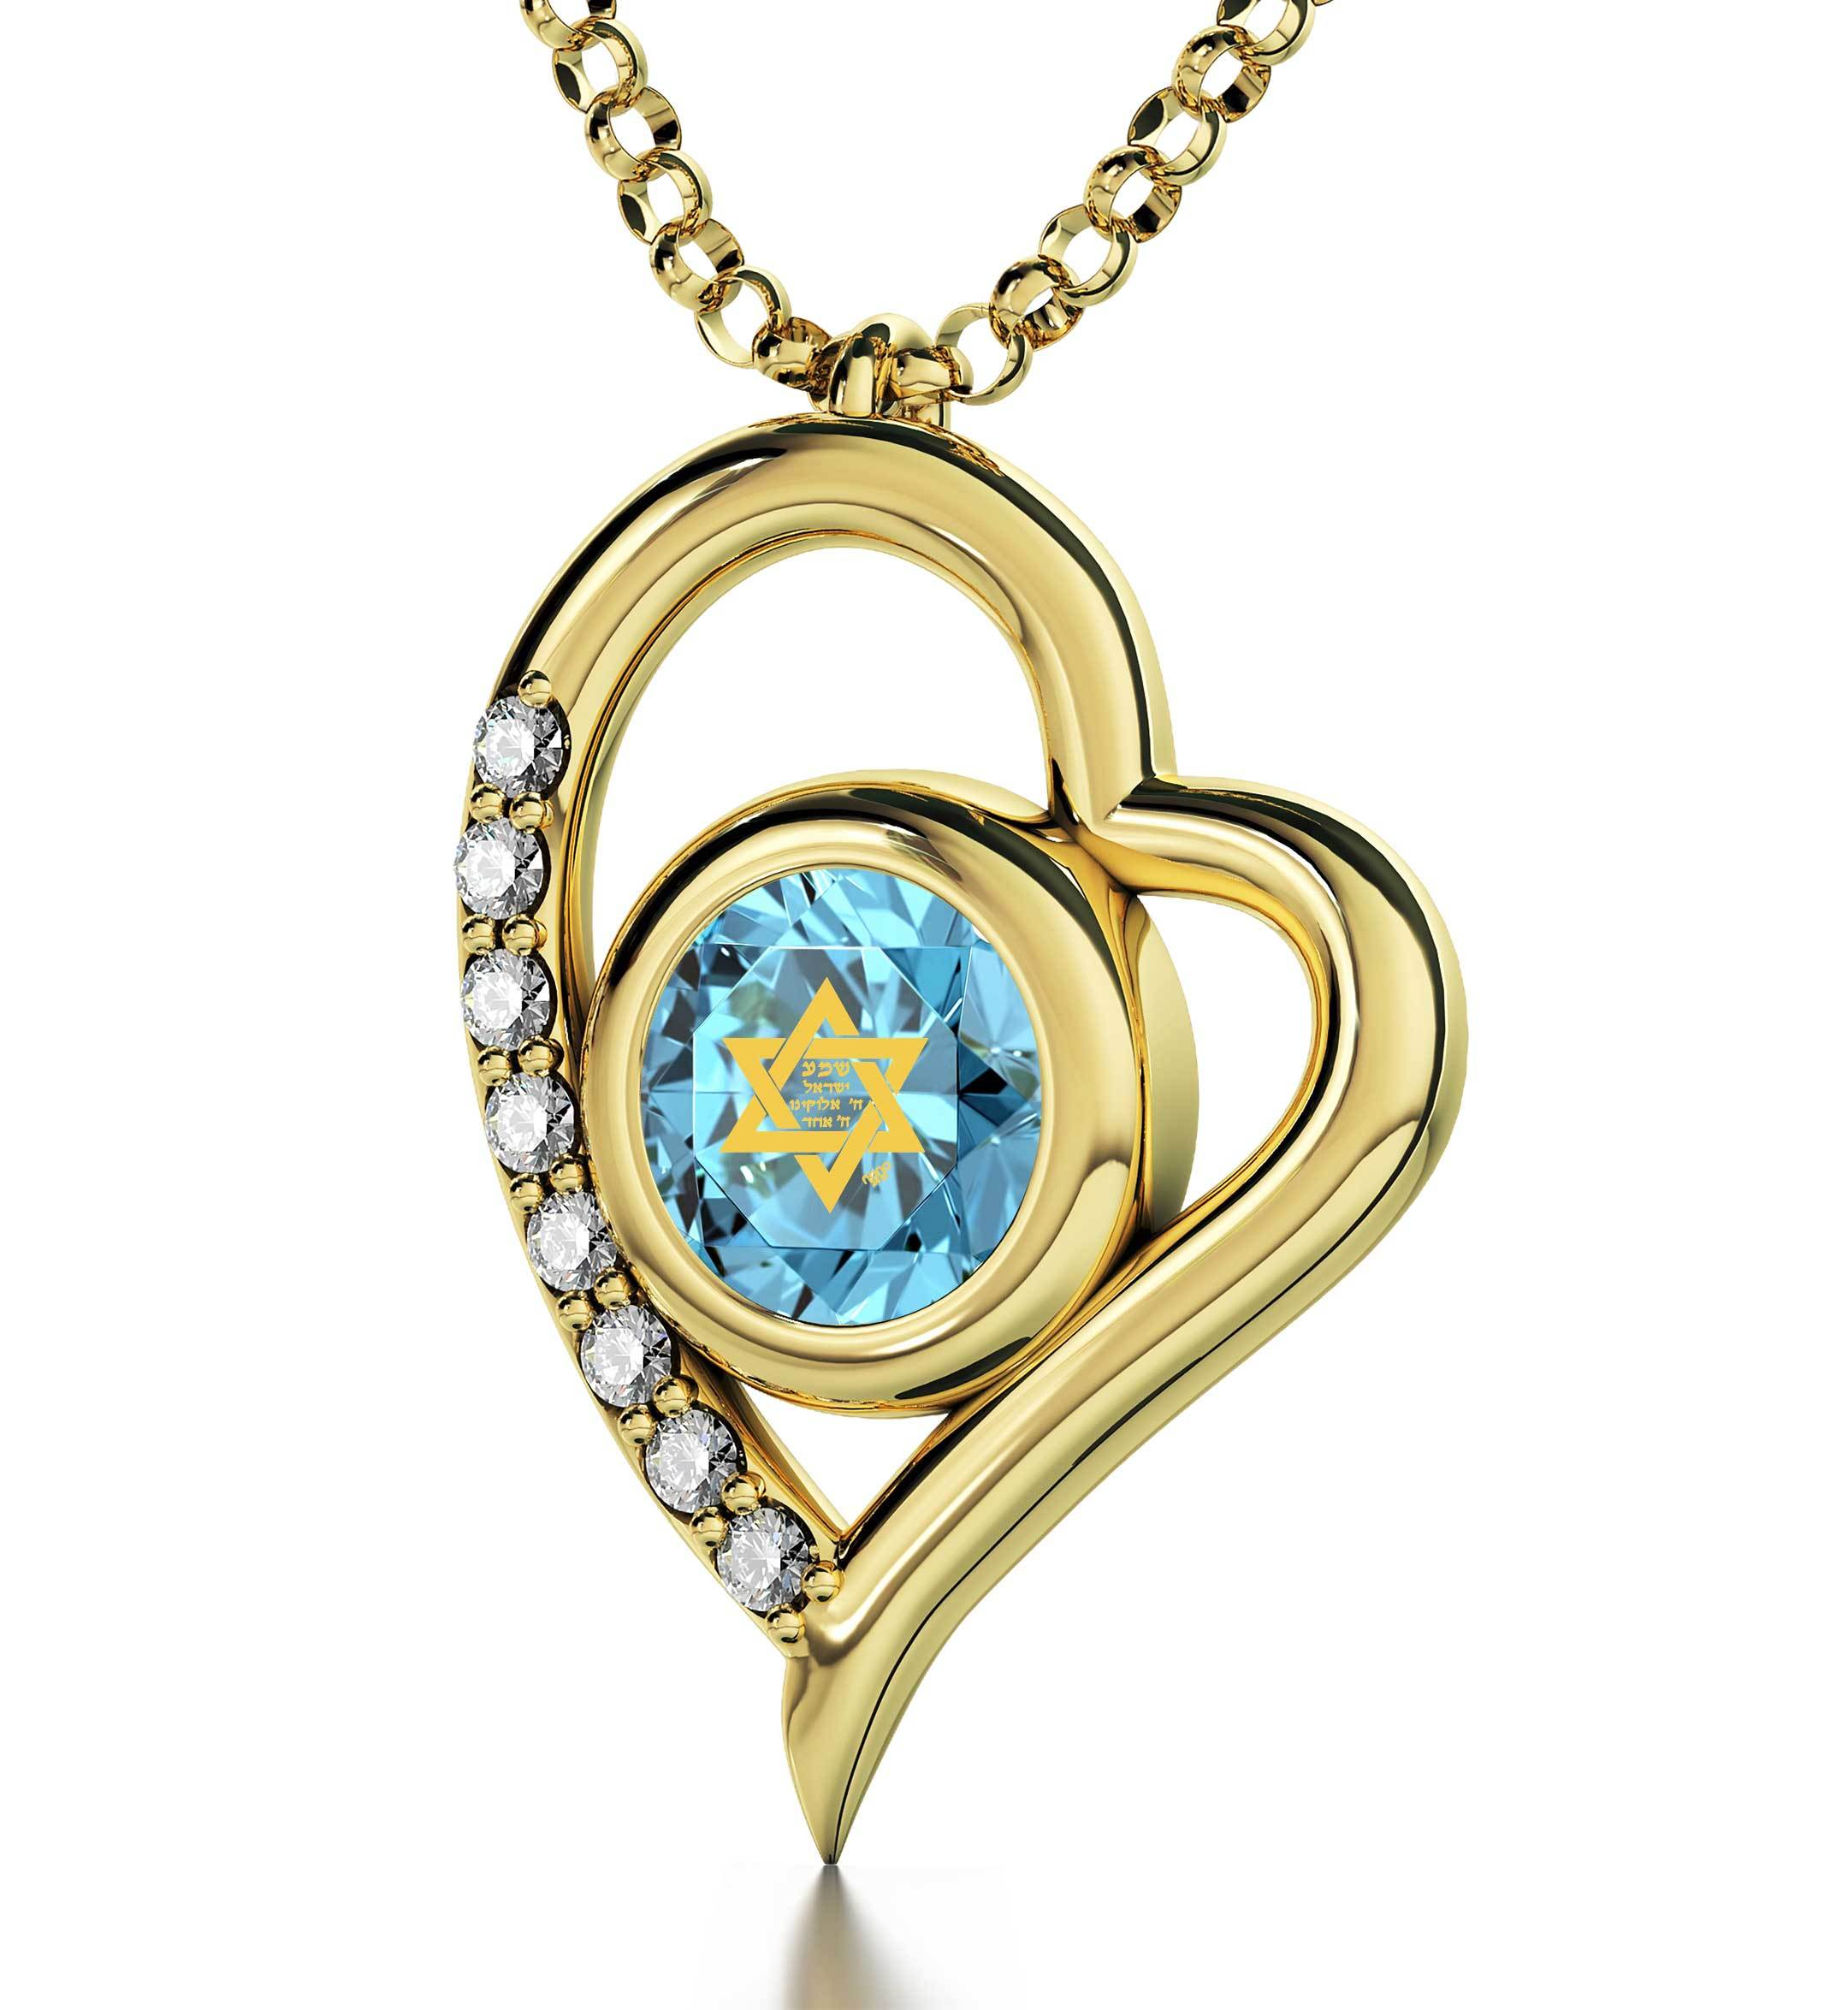 """Shema Yisrael"" Engraved in 24k, Judaica Jewelry with Aquamarine Pendant, Jewish Store, Heart Shaped Necklace"